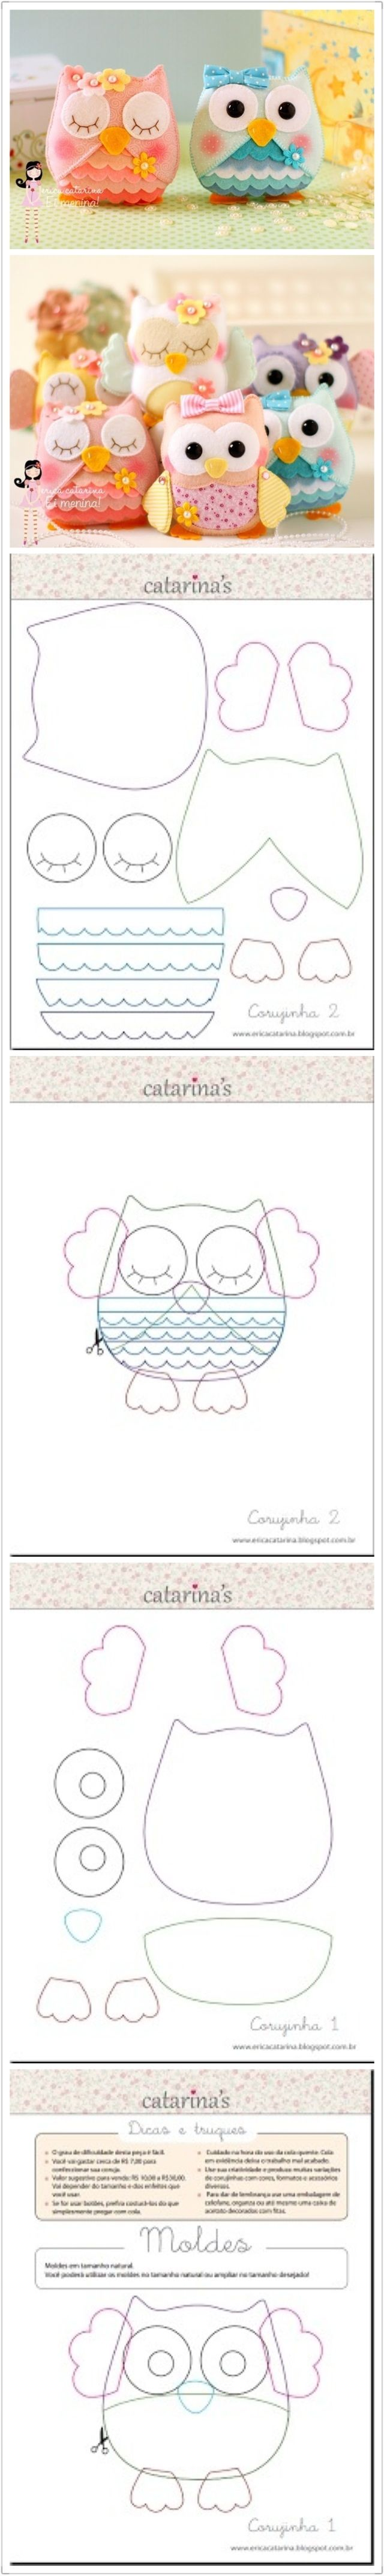 Free Owl Template - these are adorable!!!